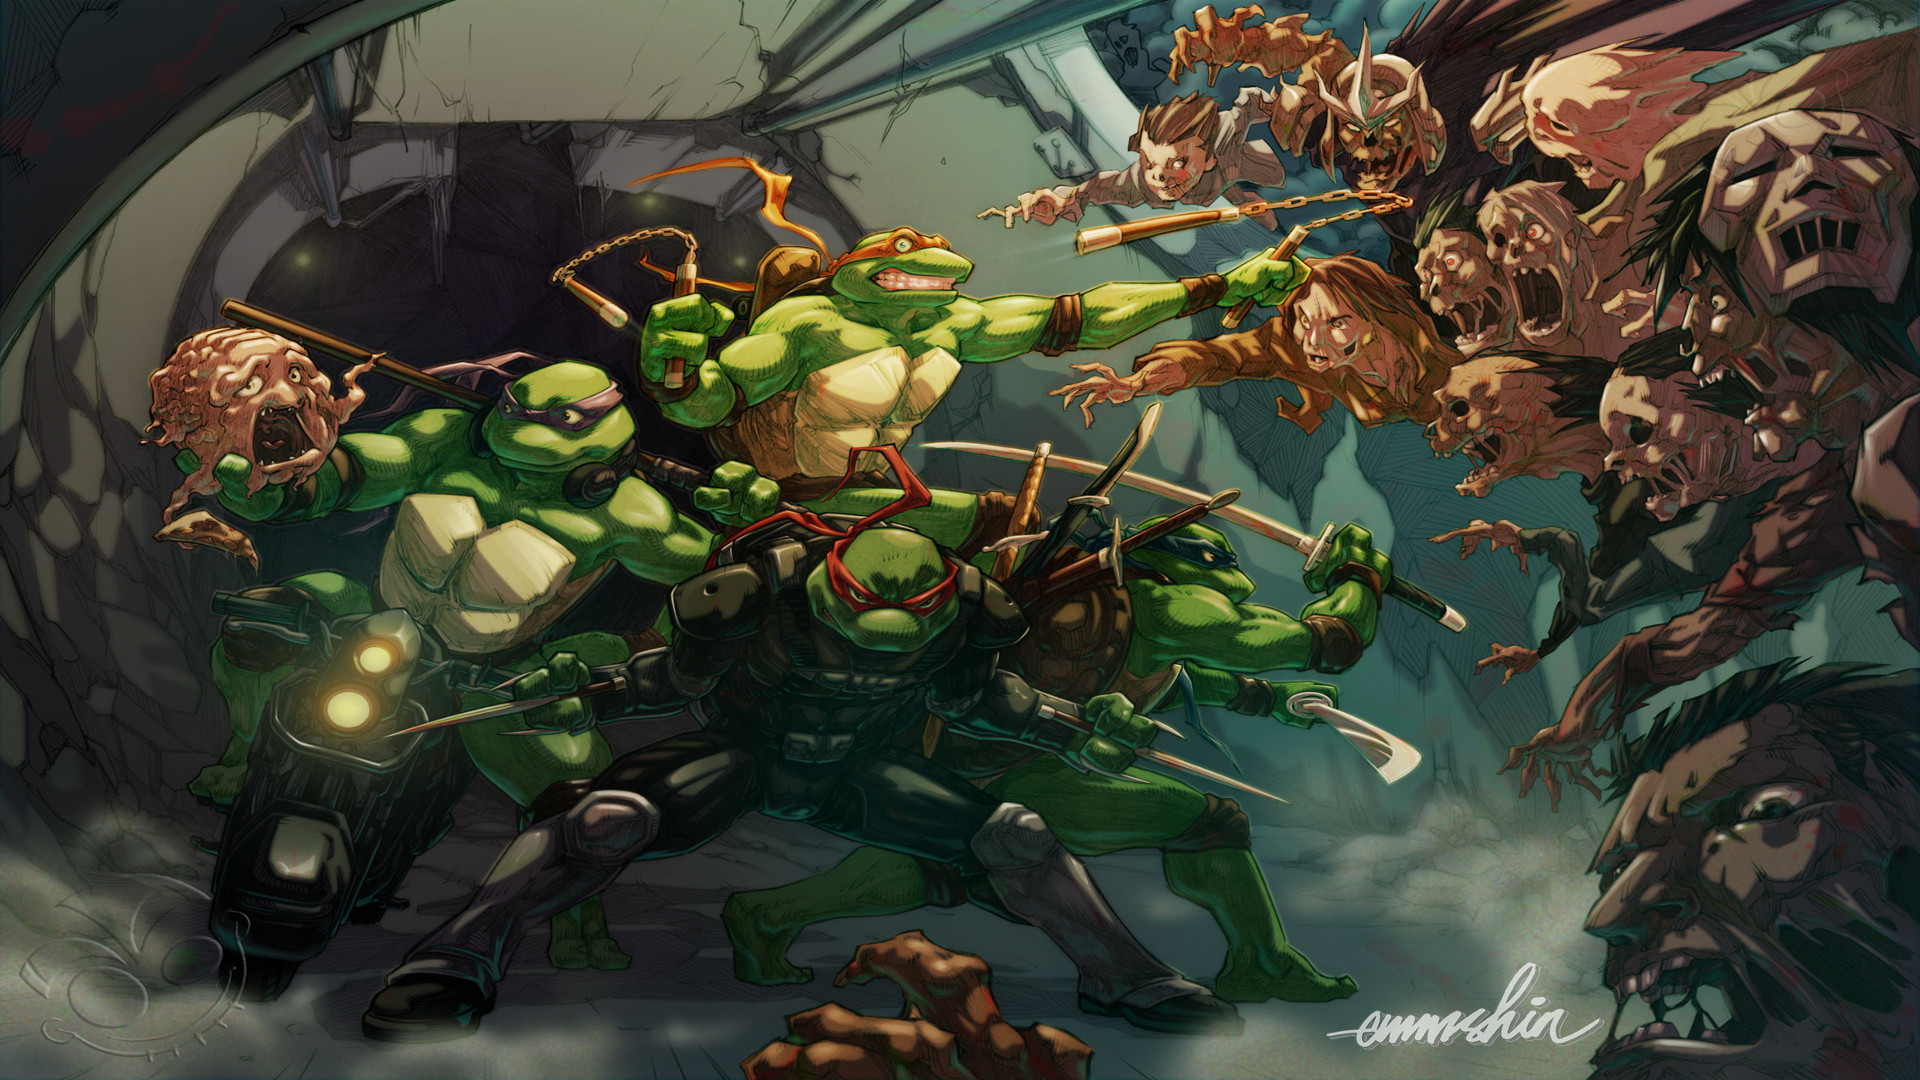 1920x1080 TMNT Wallpaper HD Amazing.